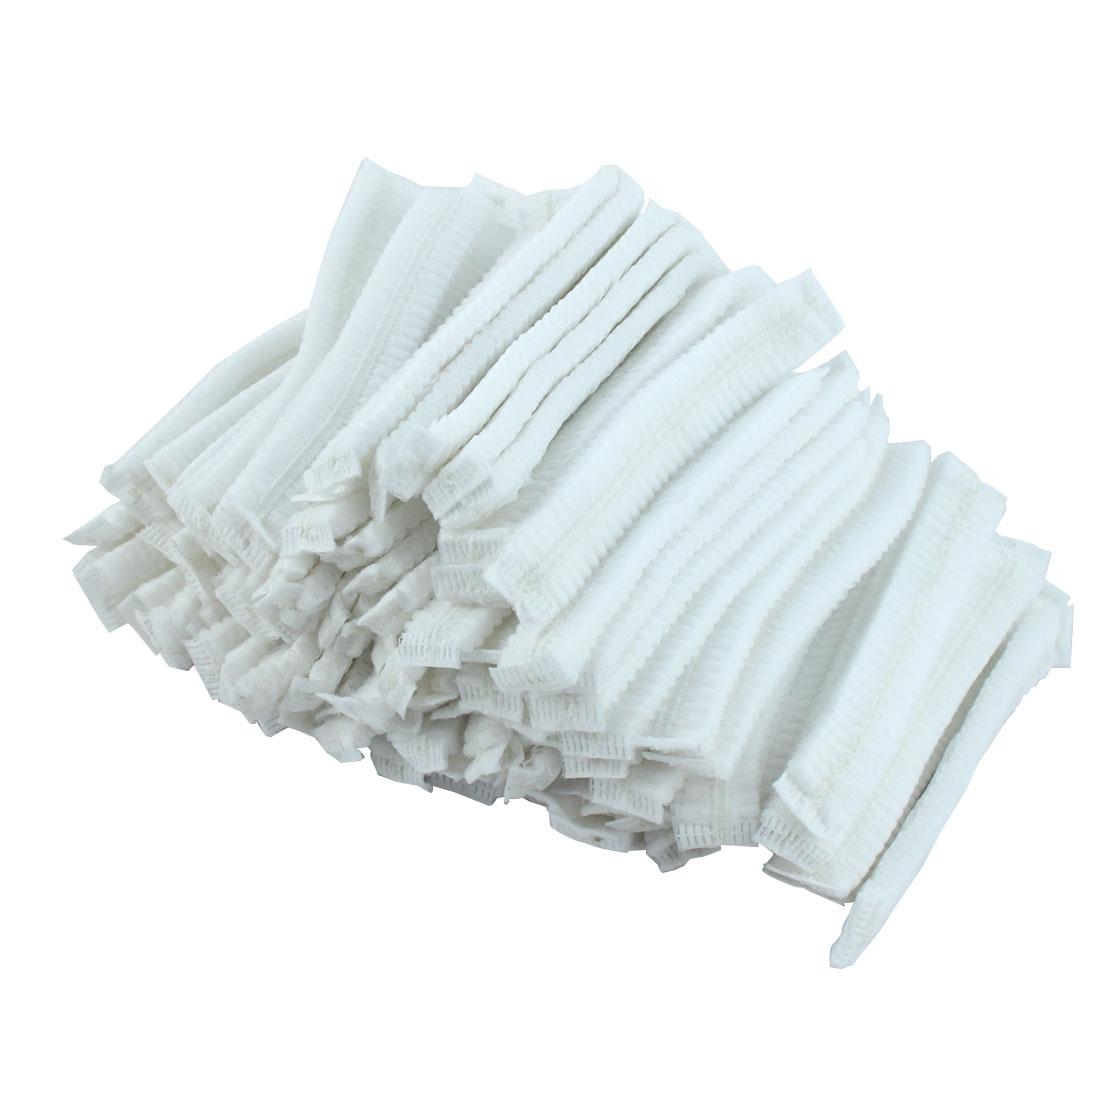 100 Pcs White Stretchy Dual Bands Disposable Non Woven Cap Bath Shower Hat